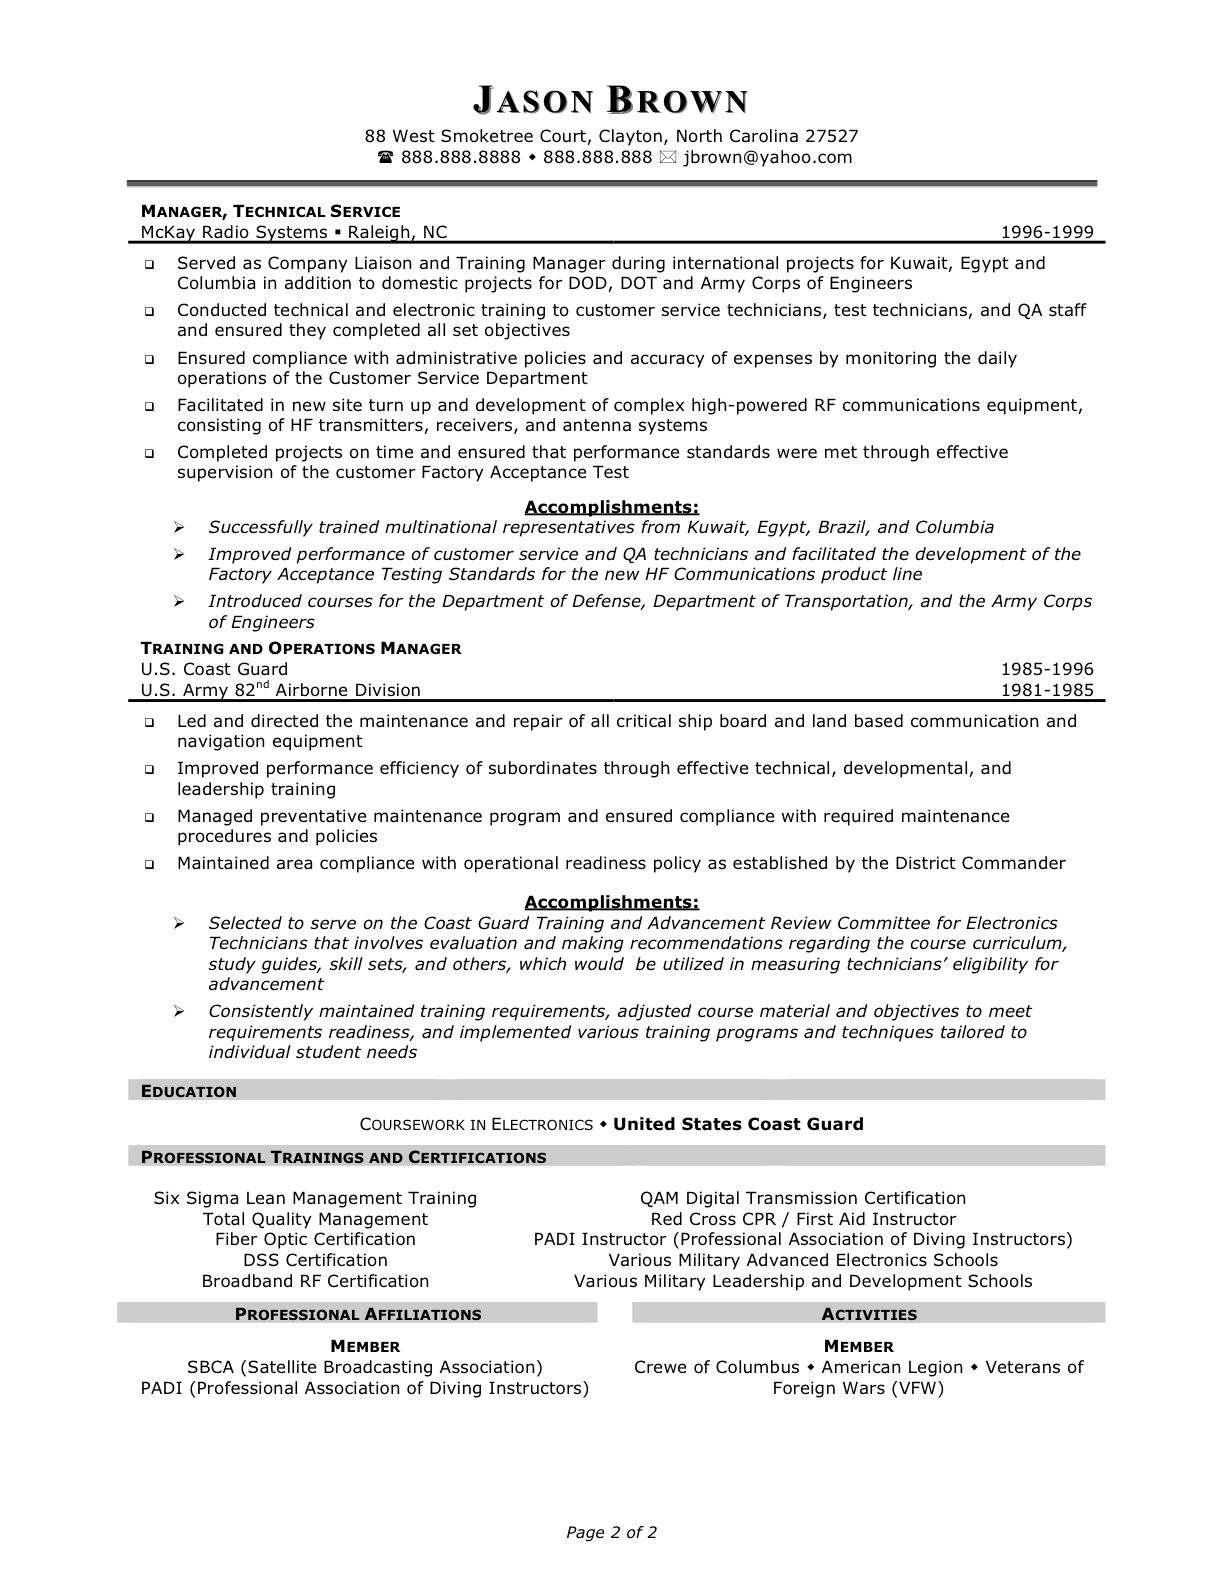 enterprise management trainee program resume httpwwwresumecareerinfo